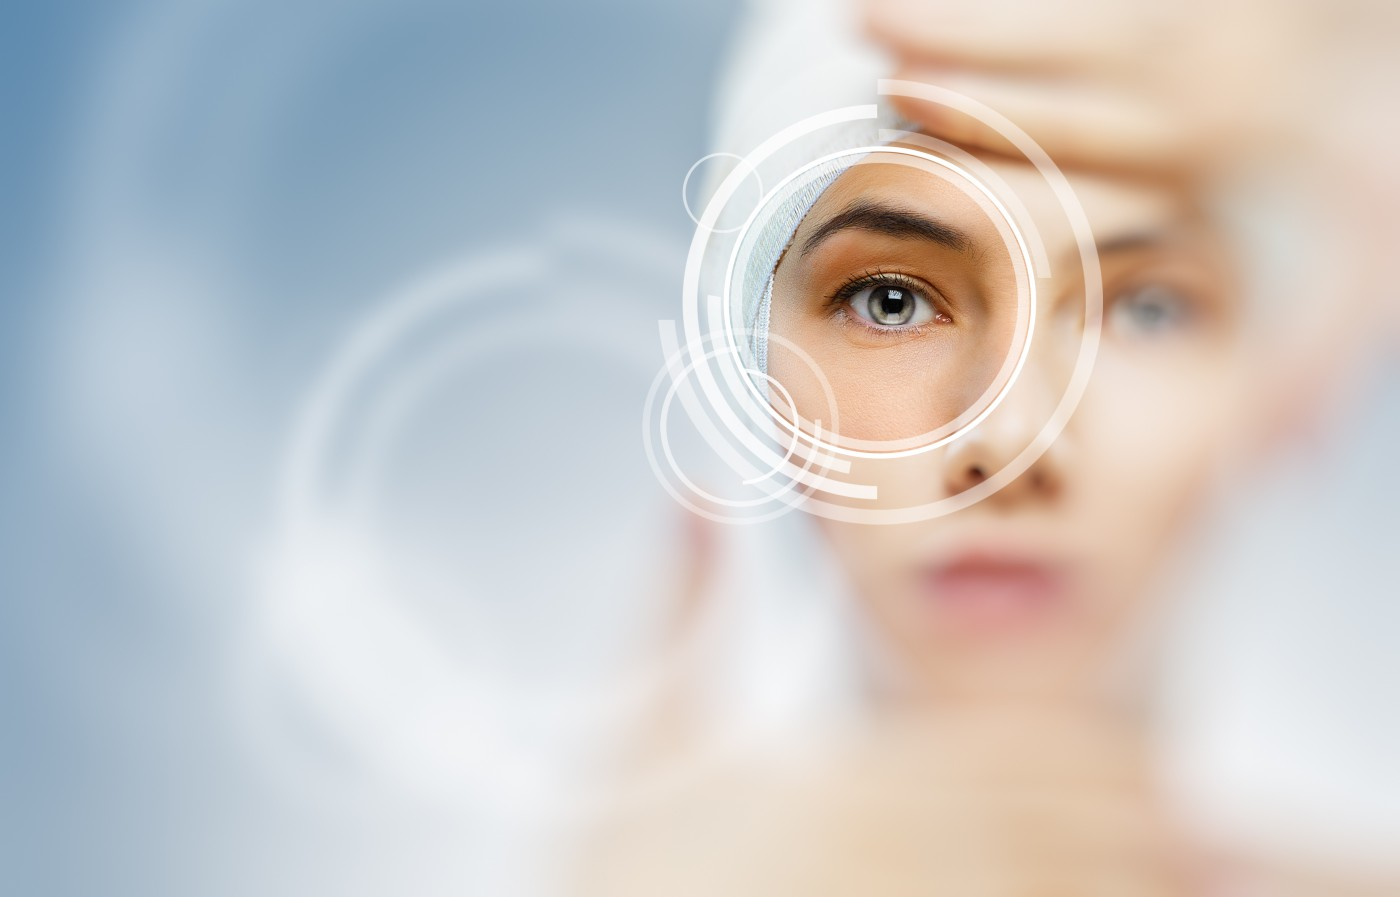 NIH Funds Major Study on Cataracts, Transparency of Eye Lens